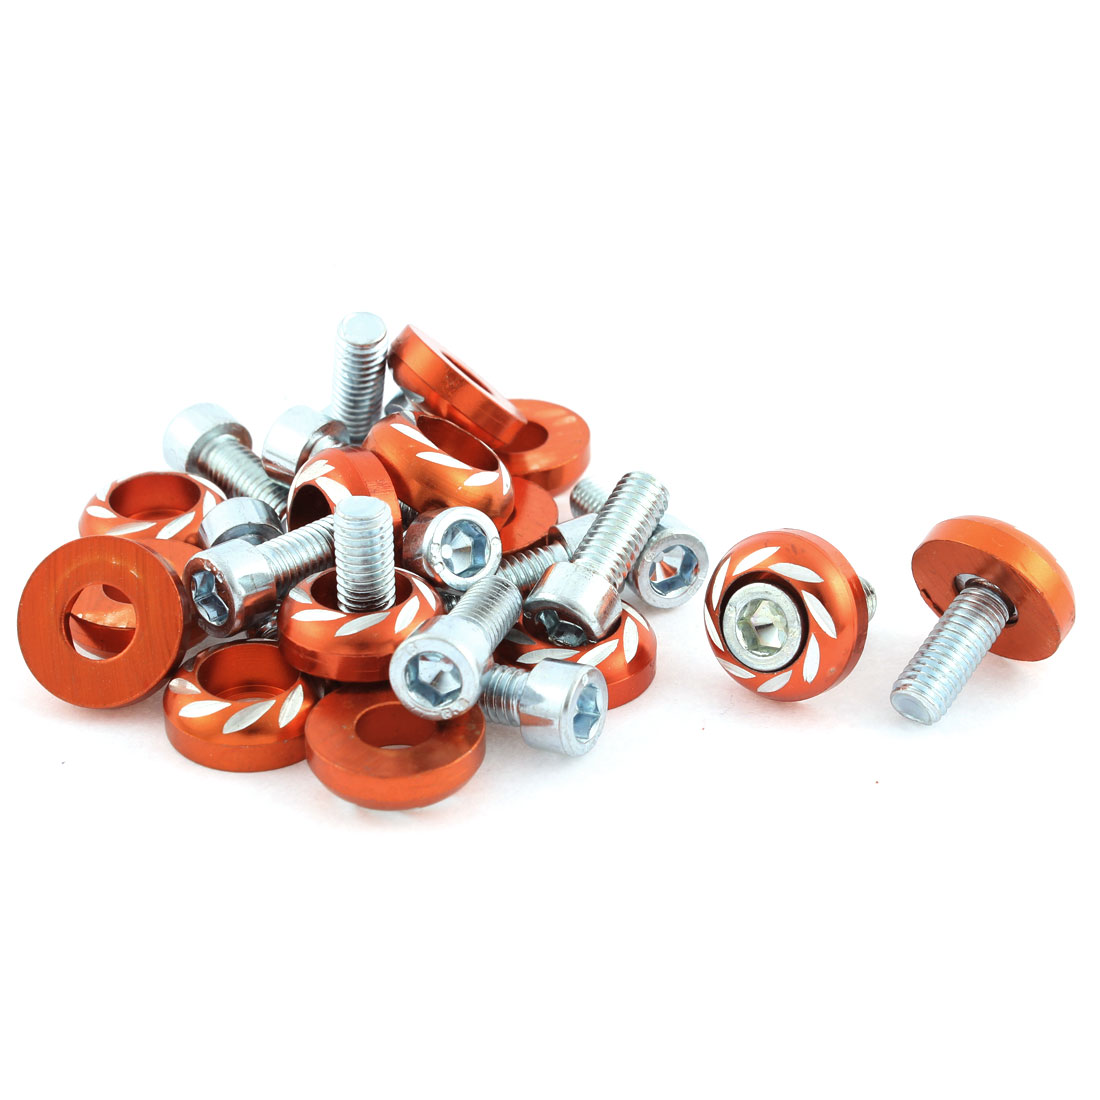 15 Pcs Orange Metal License Plate Bolt Screw for Car